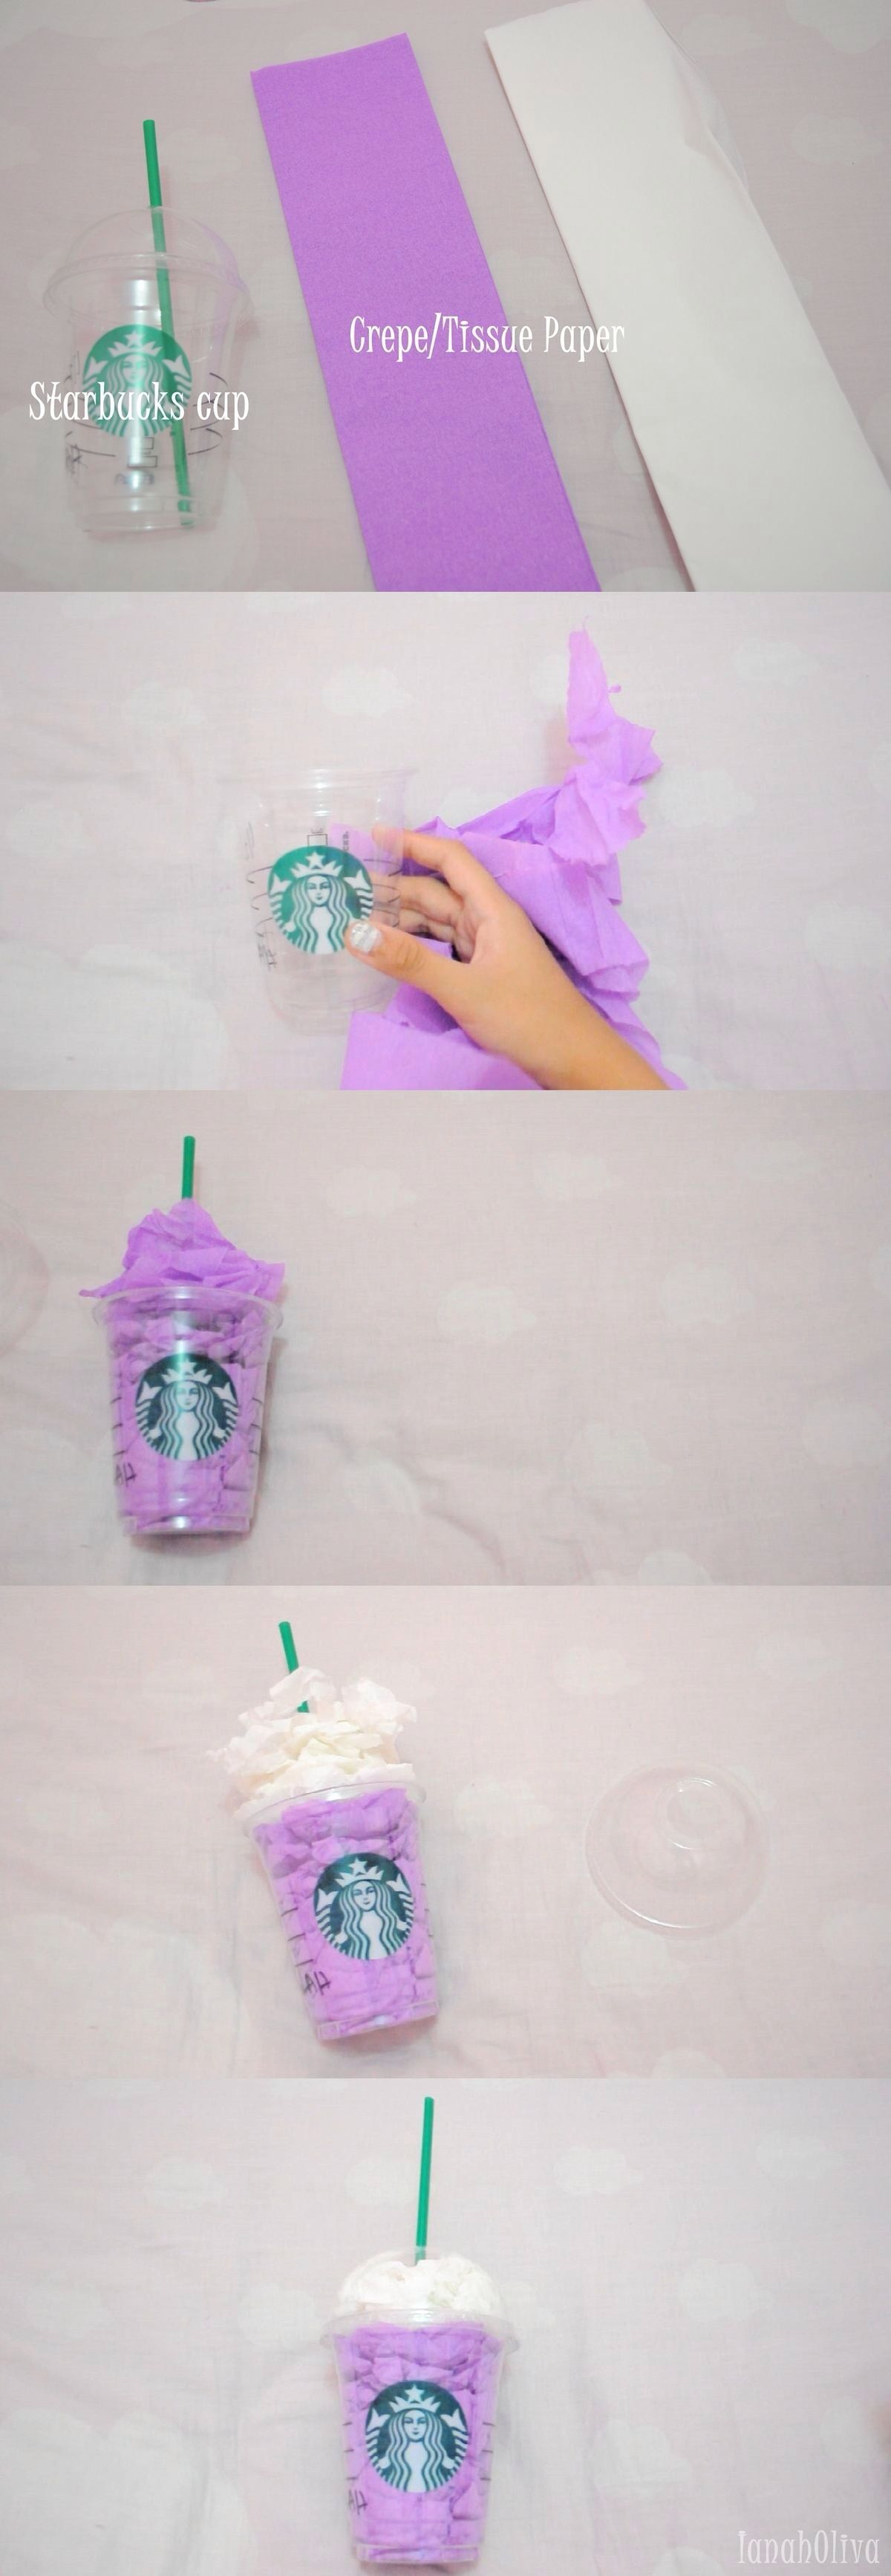 13 regalos que puedes hacer reutilizando tus vasos de starbucks diy room decorroom decorationsteen - Diy Room Decor For Teens